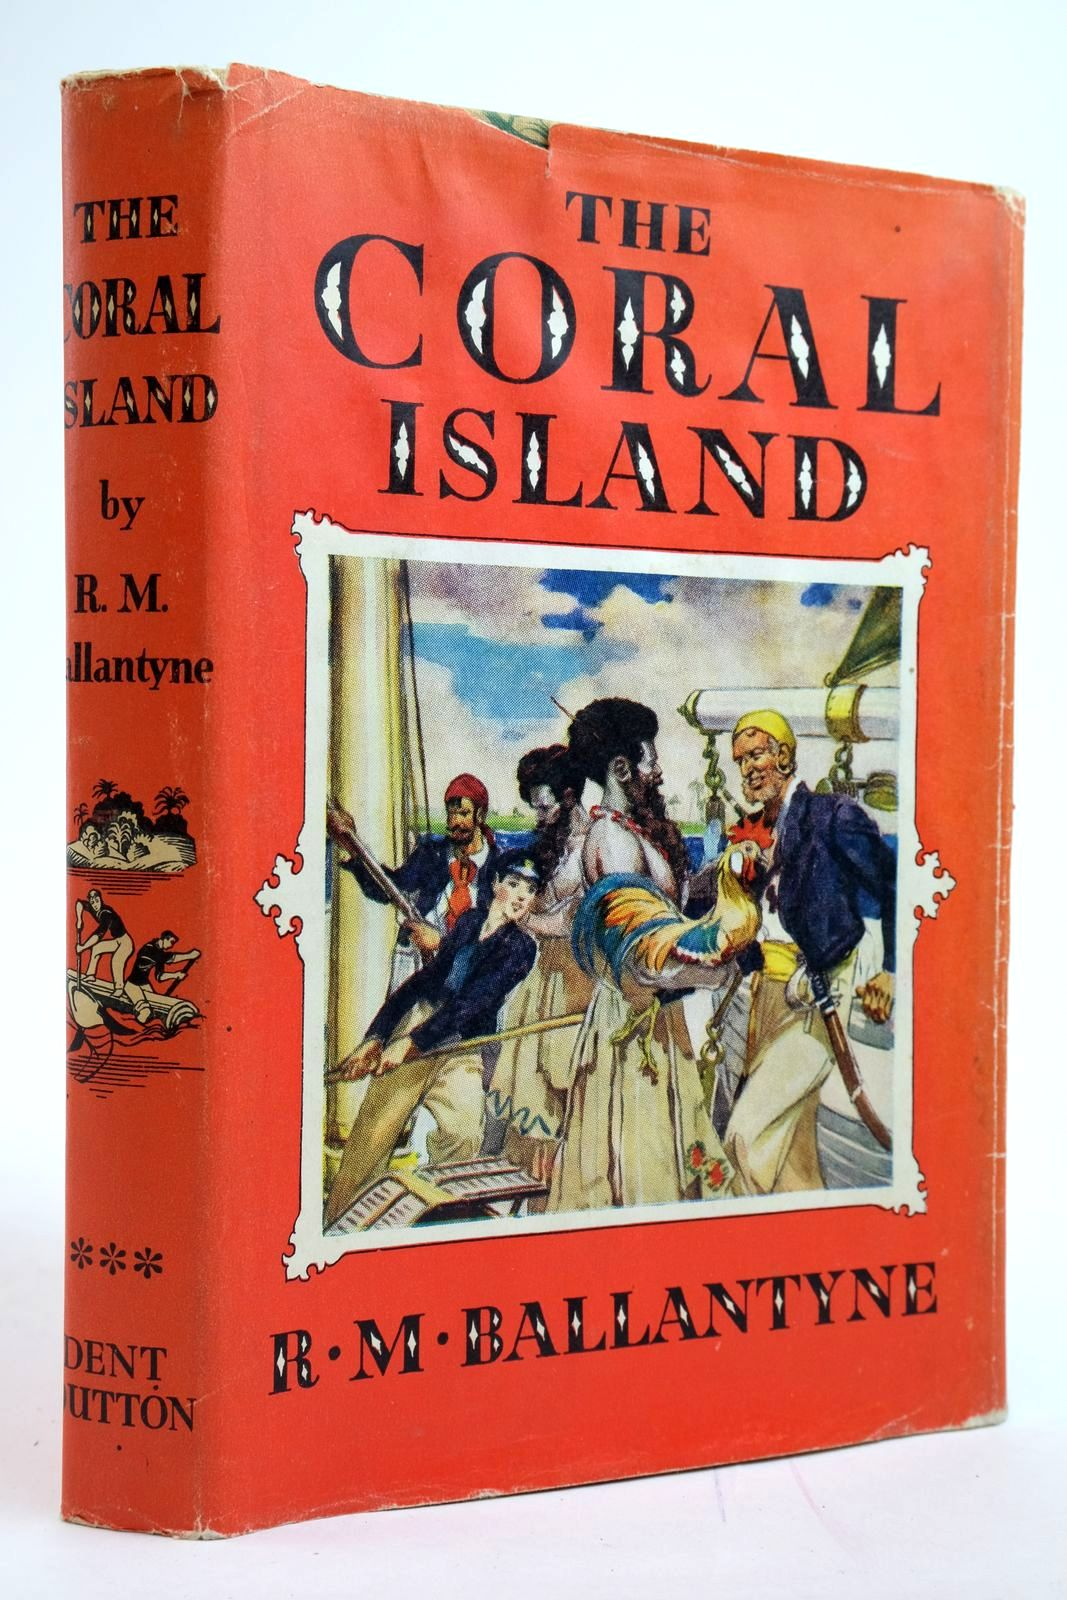 Photo of THE CORAL ISLAND written by Ballantyne, R.M. illustrated by Bates, Leo published by J.M. Dent & Sons Ltd. (STOCK CODE: 2135124)  for sale by Stella & Rose's Books